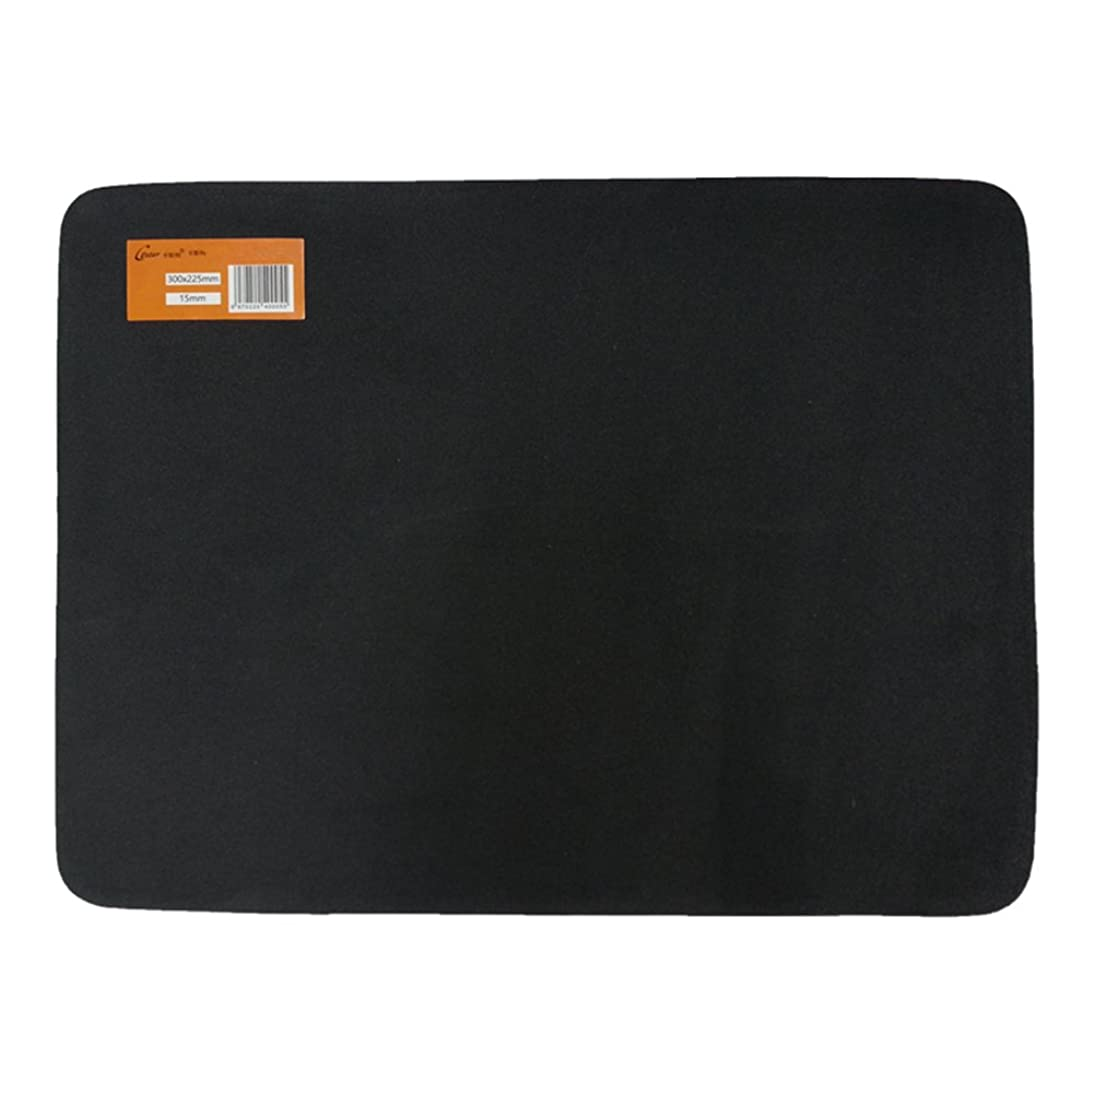 Round Black Mat for GSM Round Fabric Cutter (2PCS Oblong)